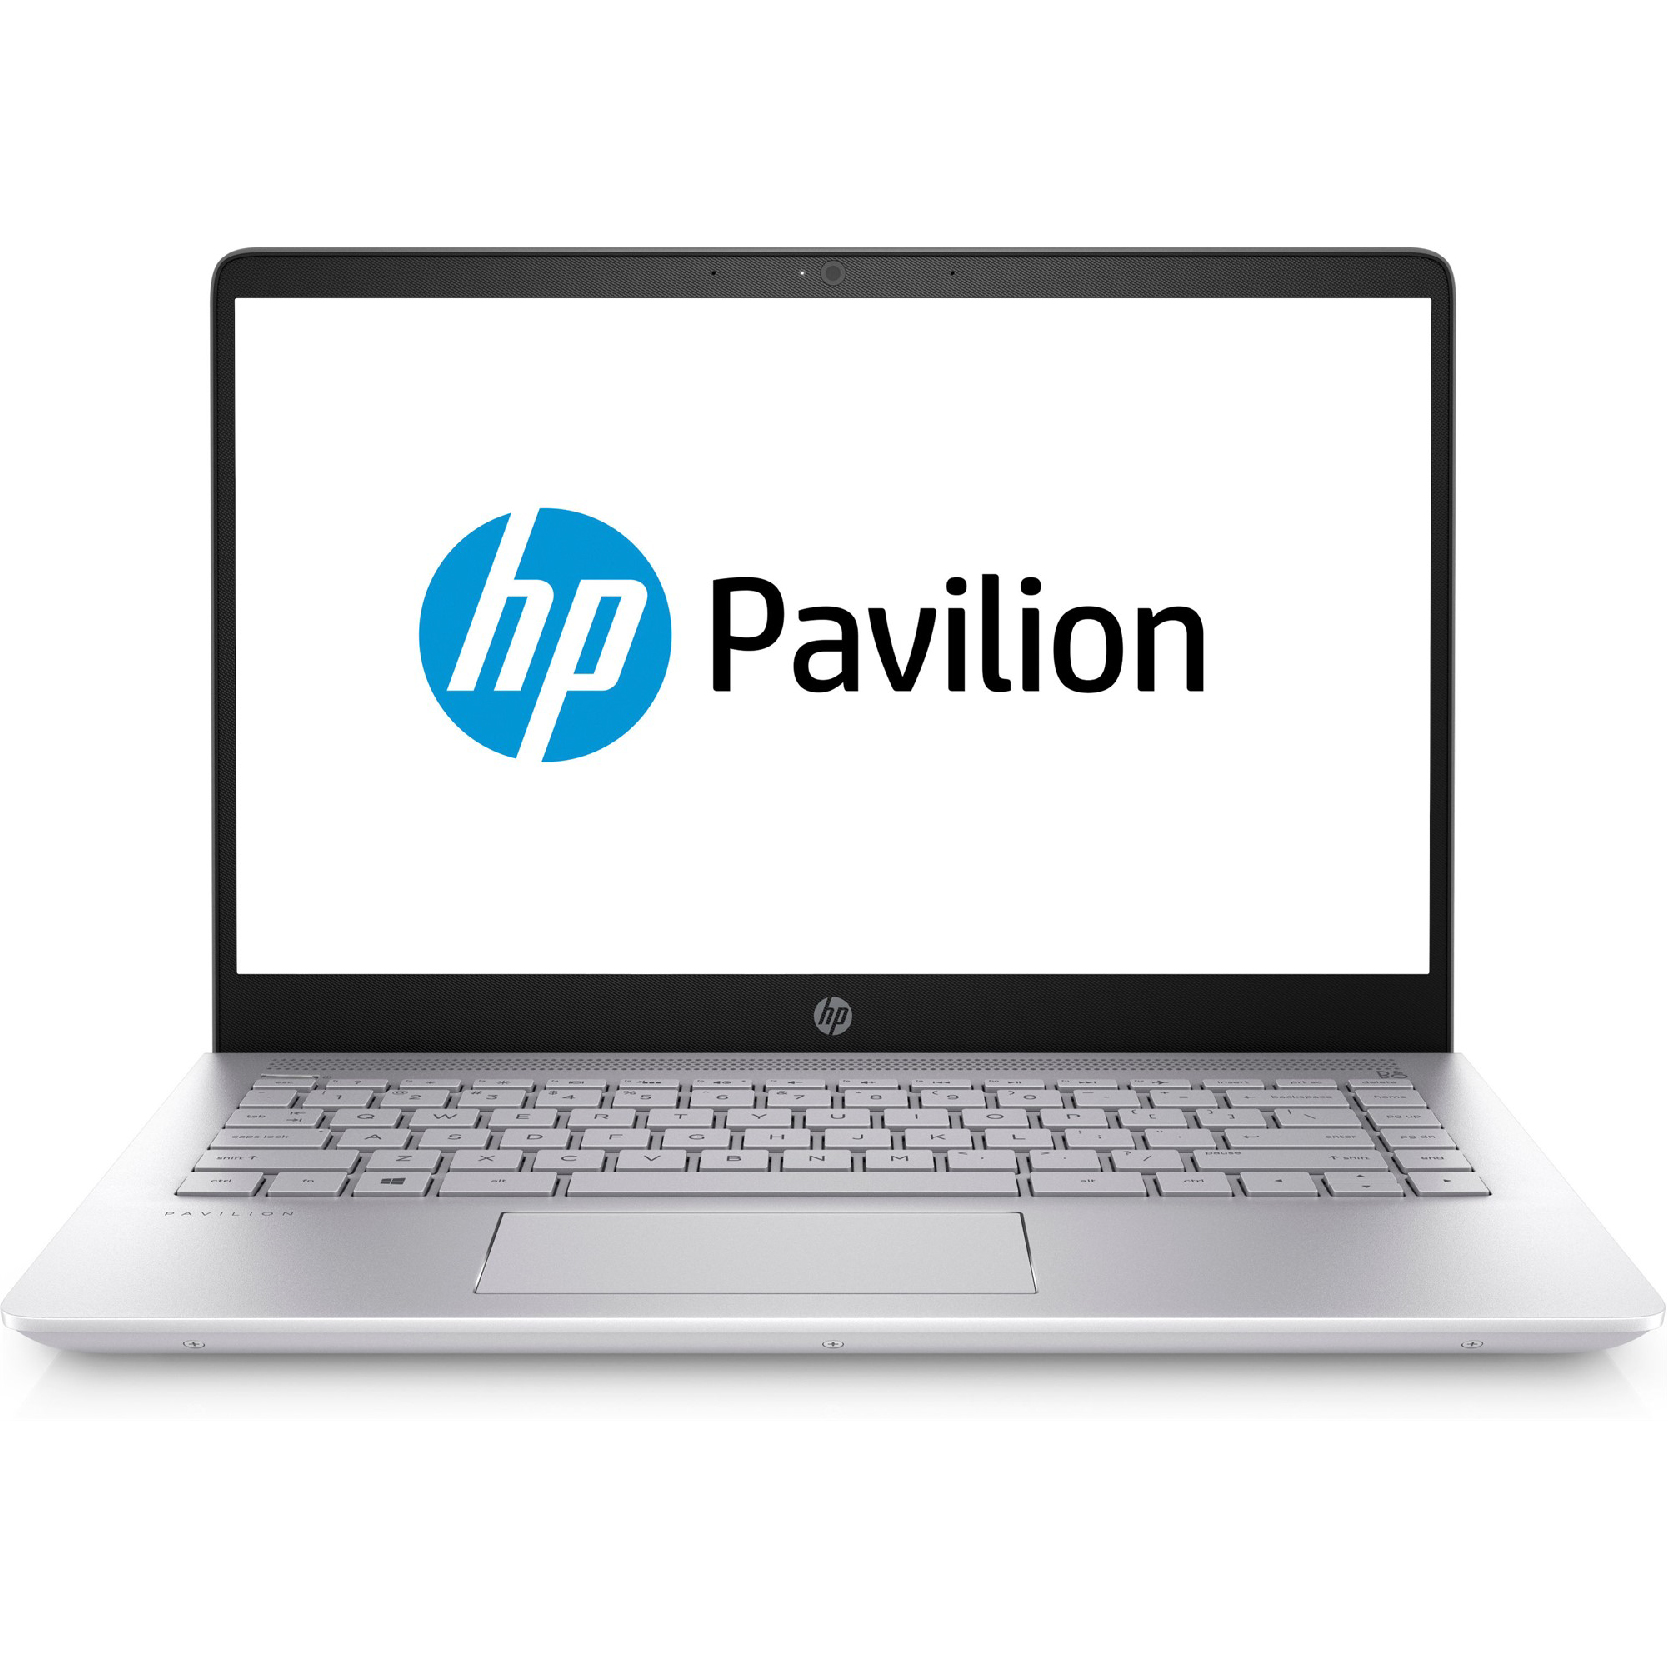 HP Pavilion 14-bf101na i5-8250U quad  14.0 FHD BV  8GB  256GB  GF 940MX 2GB  FHD IR cam  UK BL kbd  Mineral Silver  W10H6  Gift  Mouse(2HU83AA)2